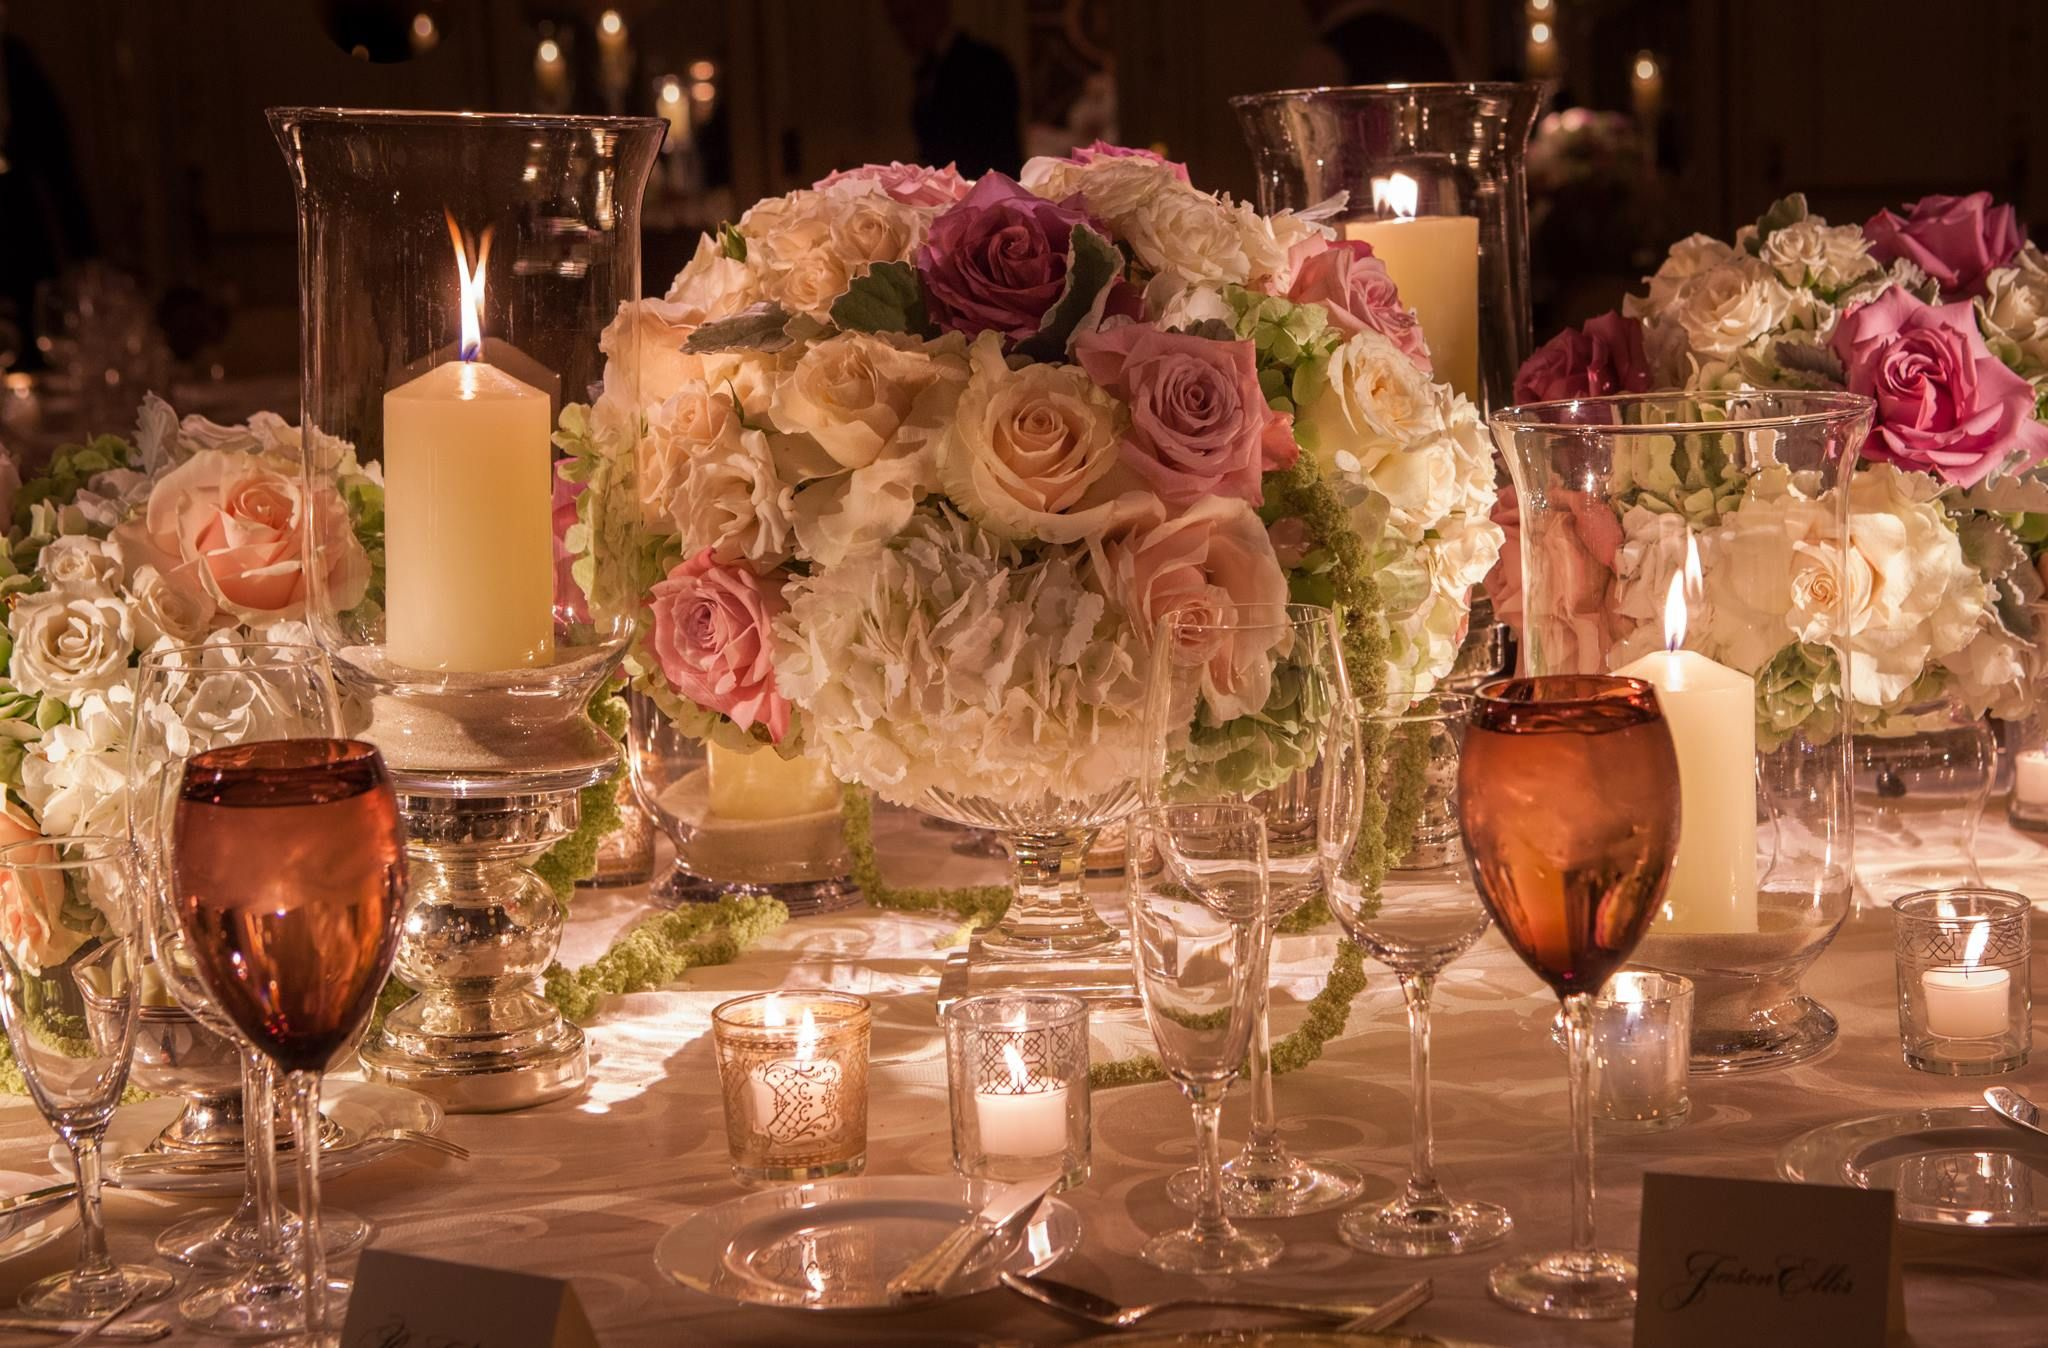 Lavish blooms, elegant draping, glamorous chandeliers, romantic lighting and candles, go ahead and let your imagination wander on these tasteful wedding inspiration from Kehoe Designs. Take a look and pin your favorite ideas! Featured Photographer:Soleil Media; Featured Event Design:Kehoe Designs Featured Event Design:Kehoe Designs Featured Event Design:Kehoe Designs Featured Event Design:Kehoe Designs; Featured Photographer:Bob & […]